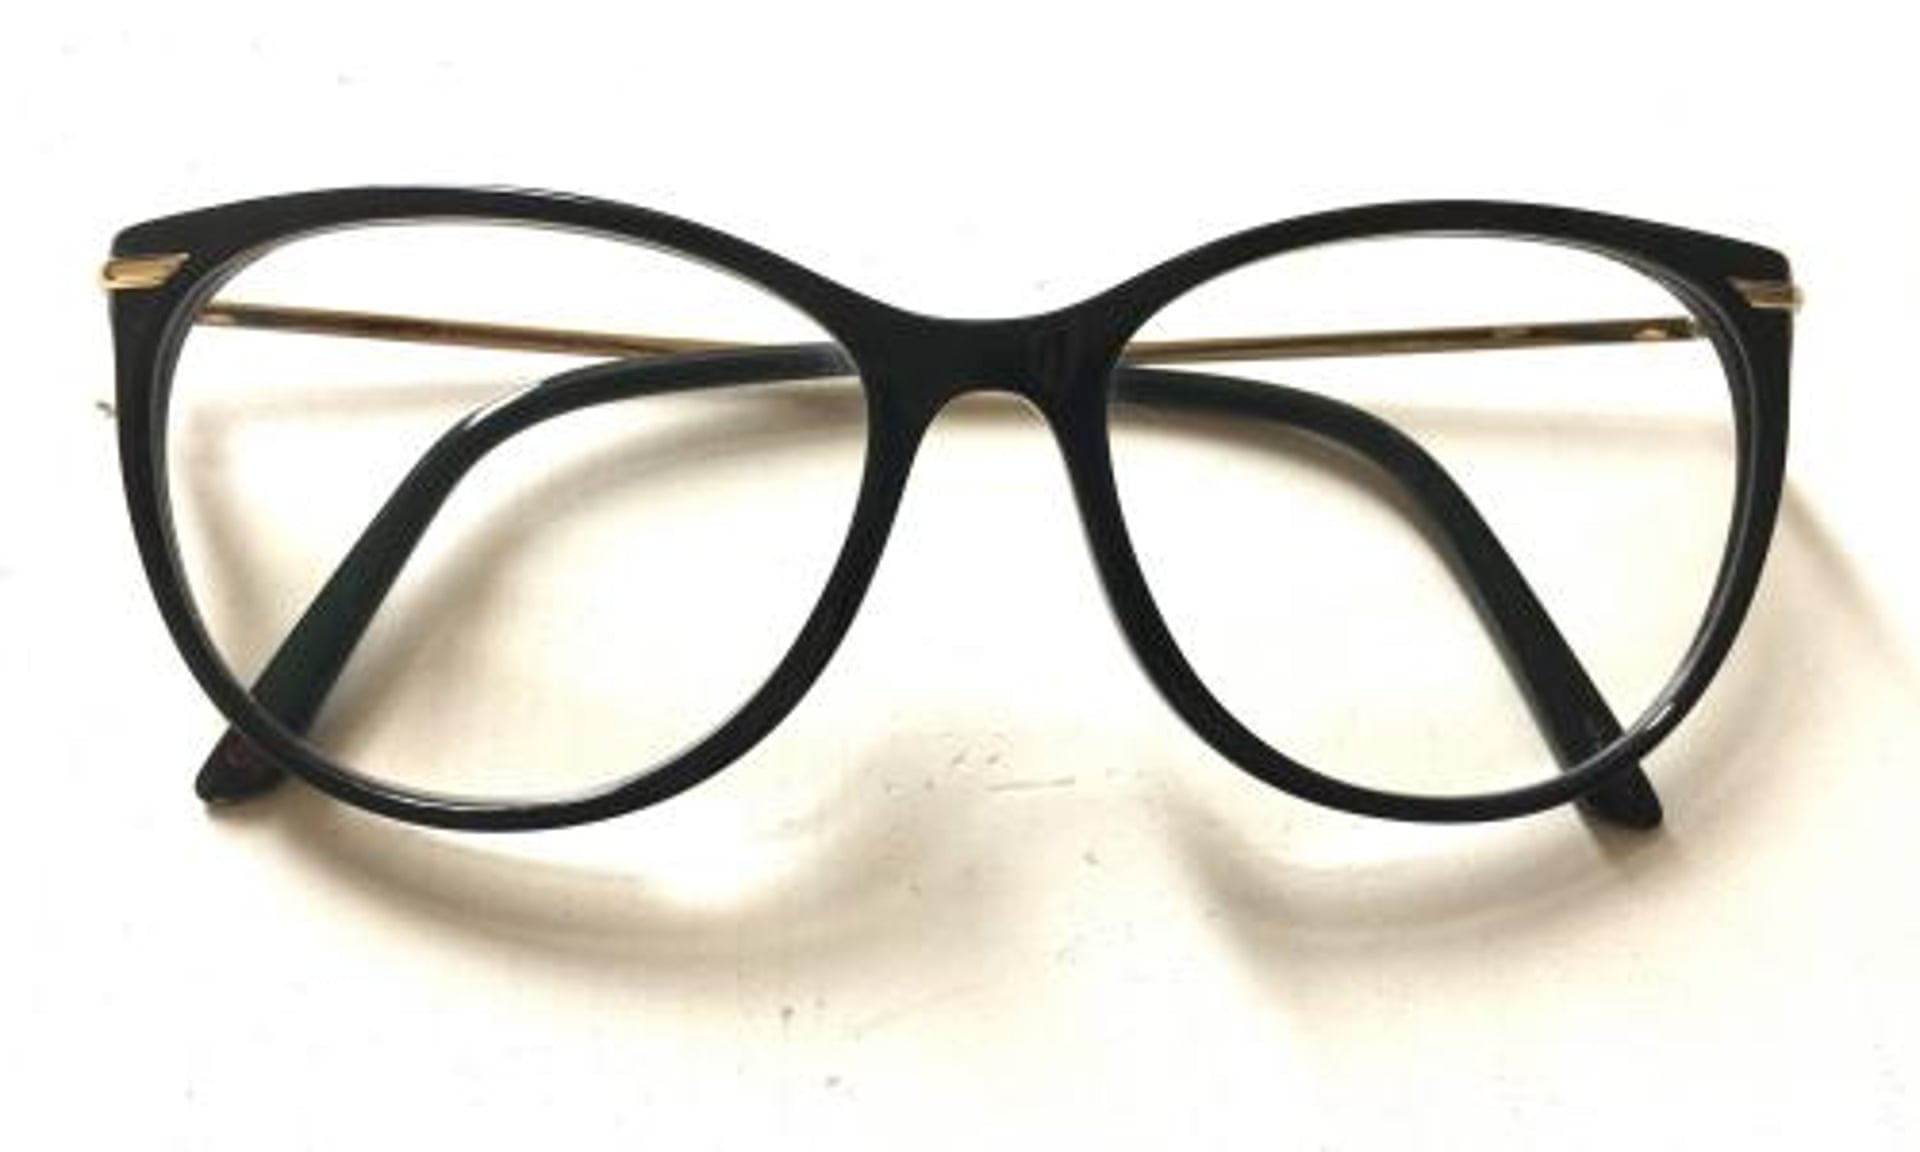 My life in specs: \'I have a great face for glasses\' | Bim Adewunmi ...